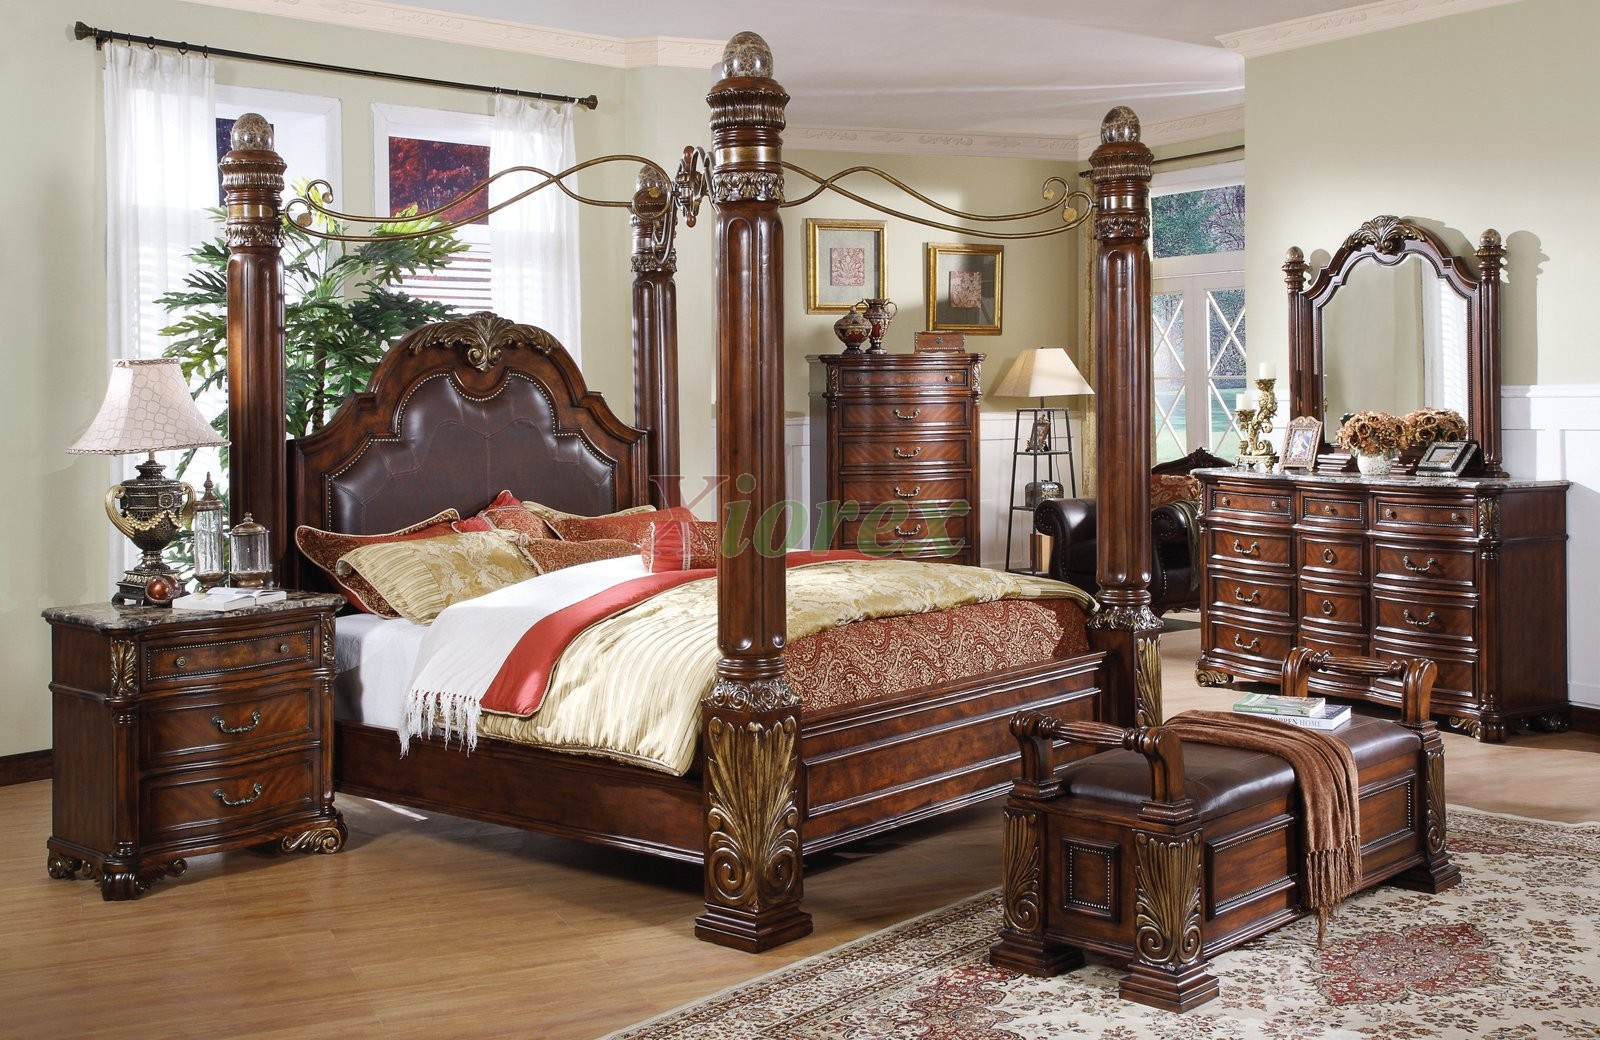 king poster bedroom sets. Poster Bedroom Set w Metal Canopy  Leather Headboard Queen and King Beds Bed Sets Furniture 100